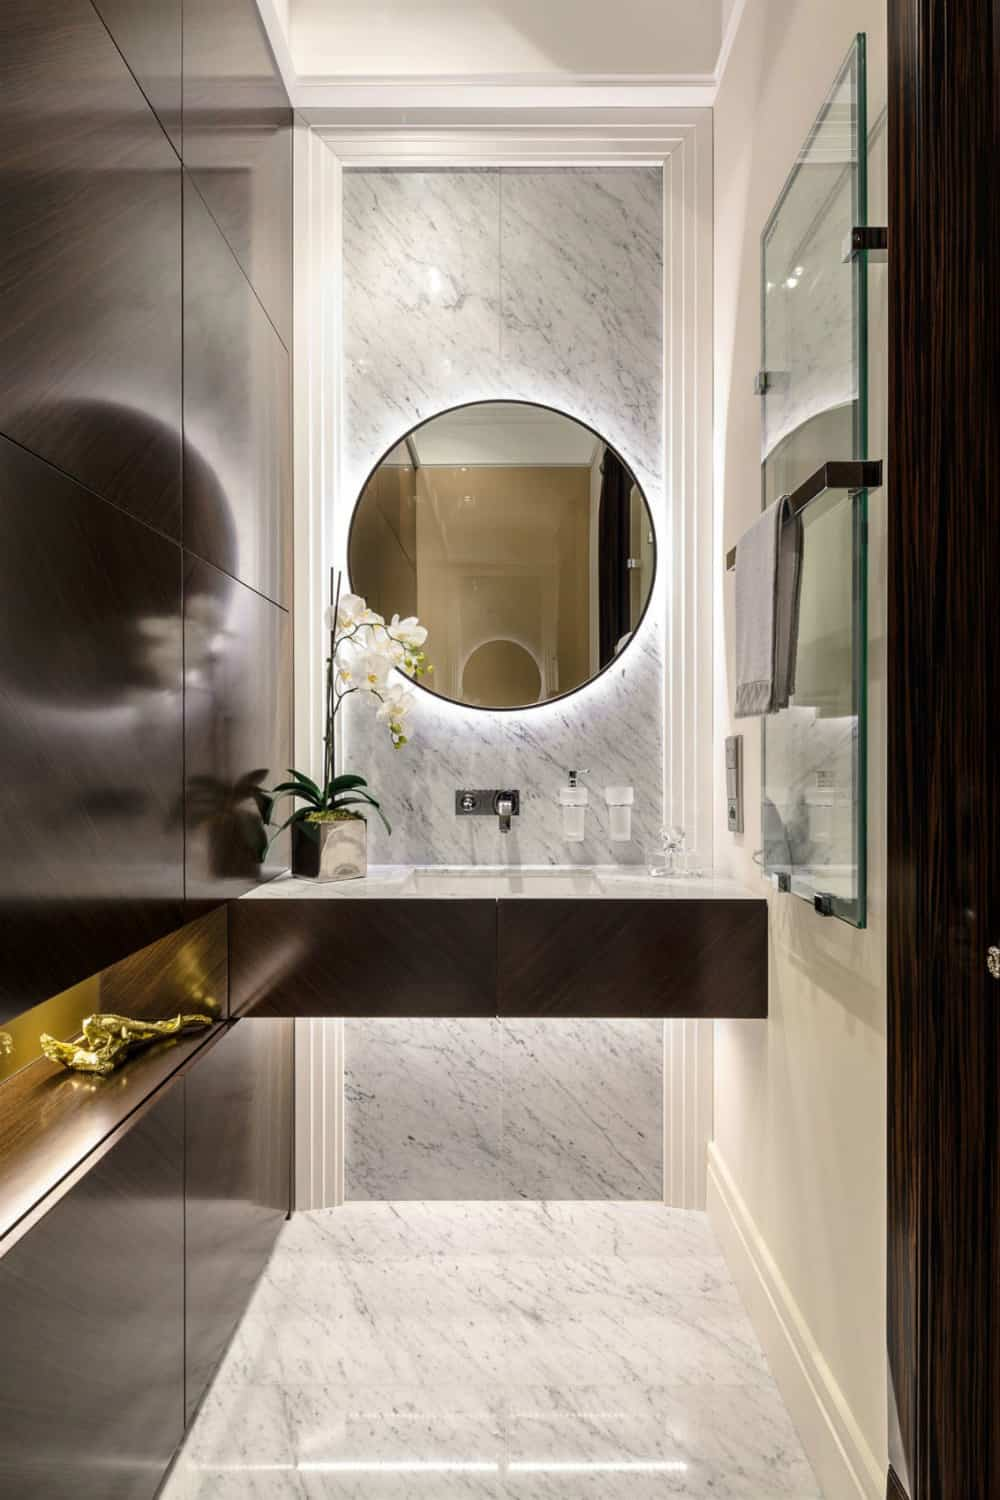 Chic apartment bath design by NGStudio-19